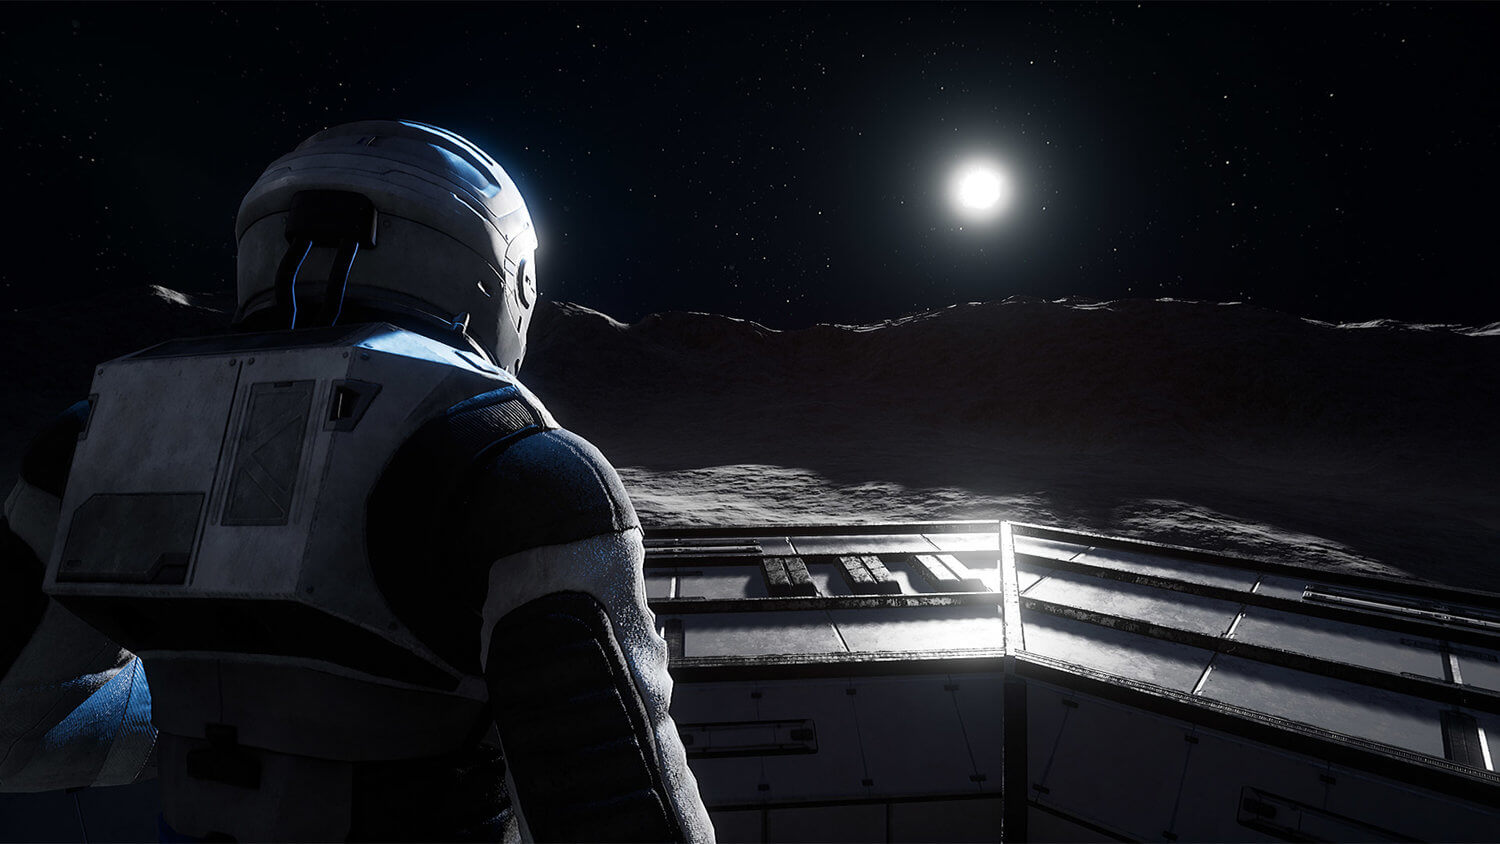 The Lunar surface in Deliver Us The Moon